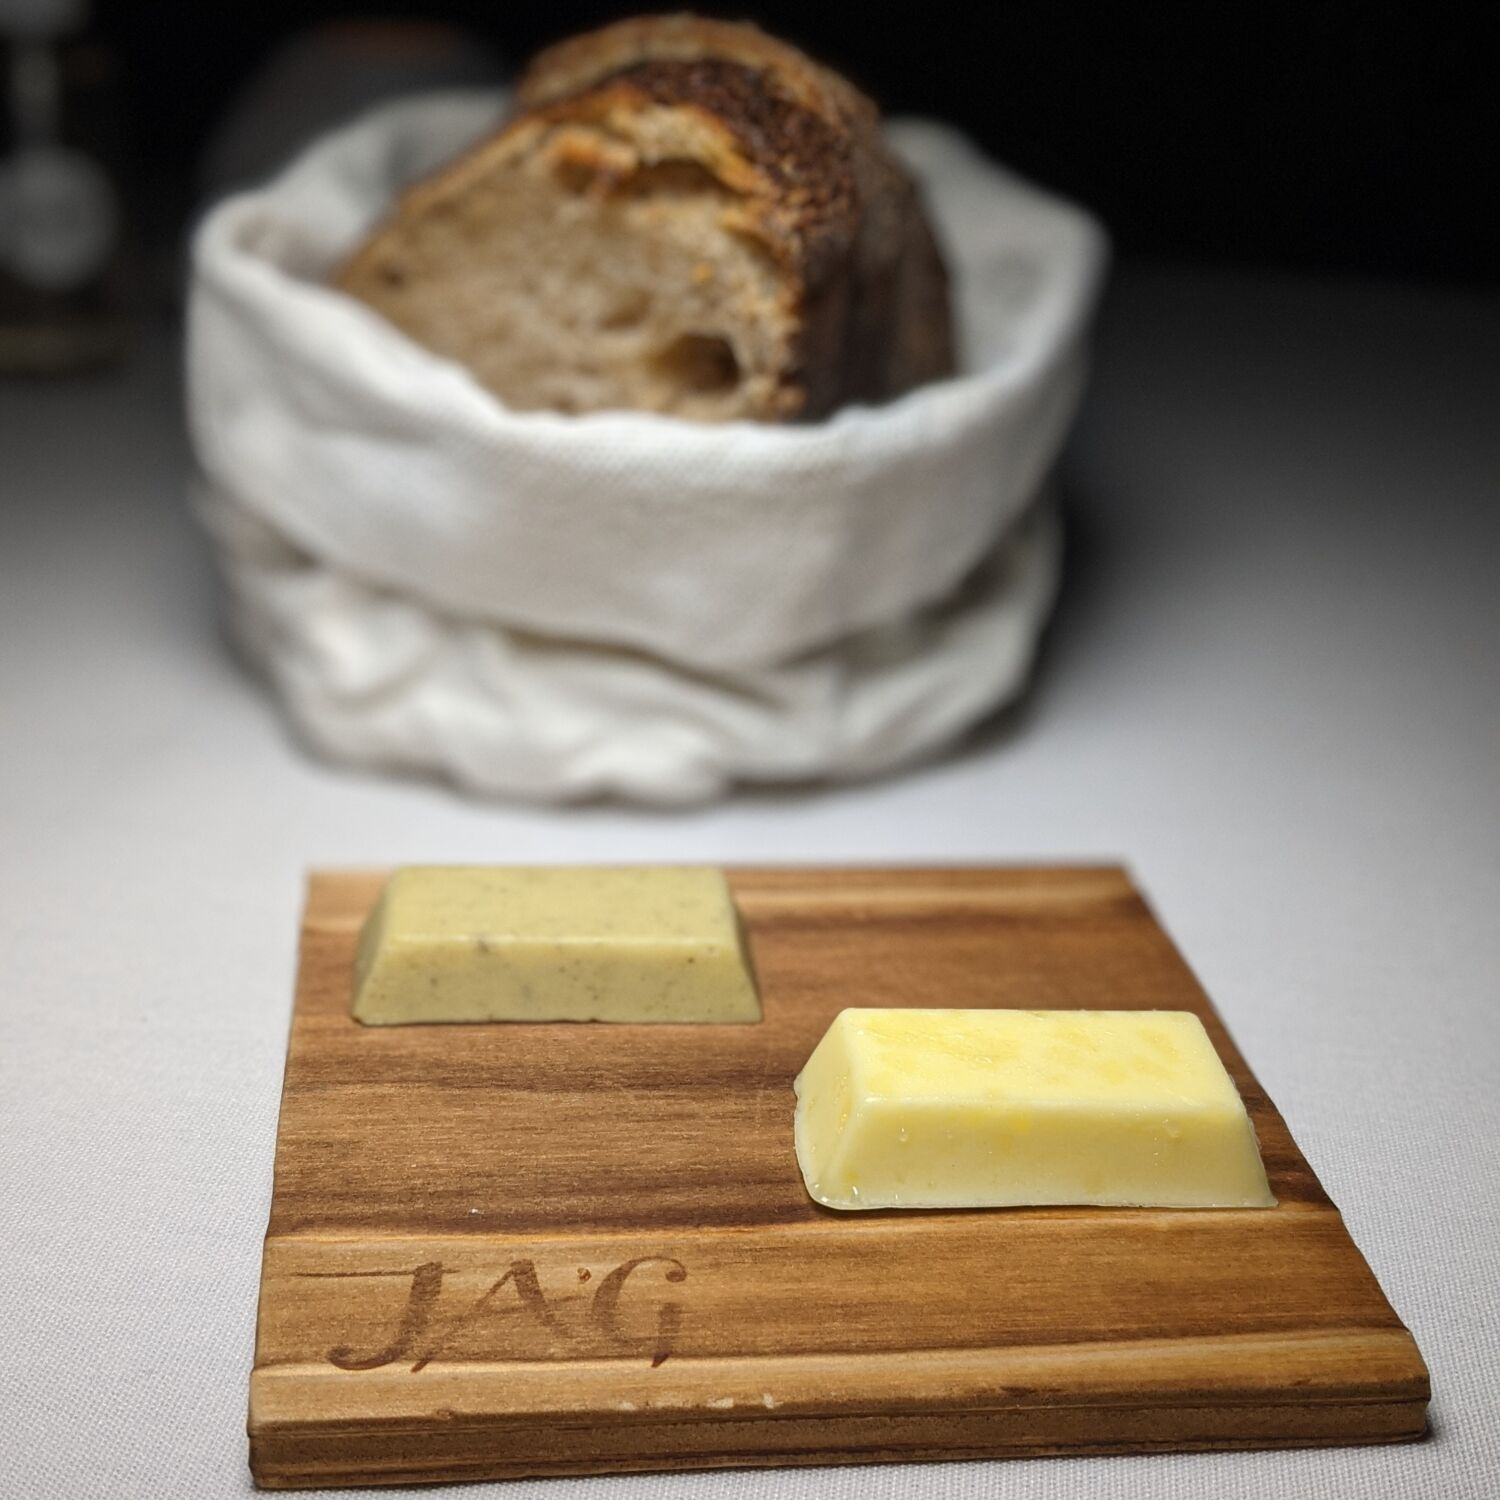 Restaurant JAG Bread with Two Types of Butter